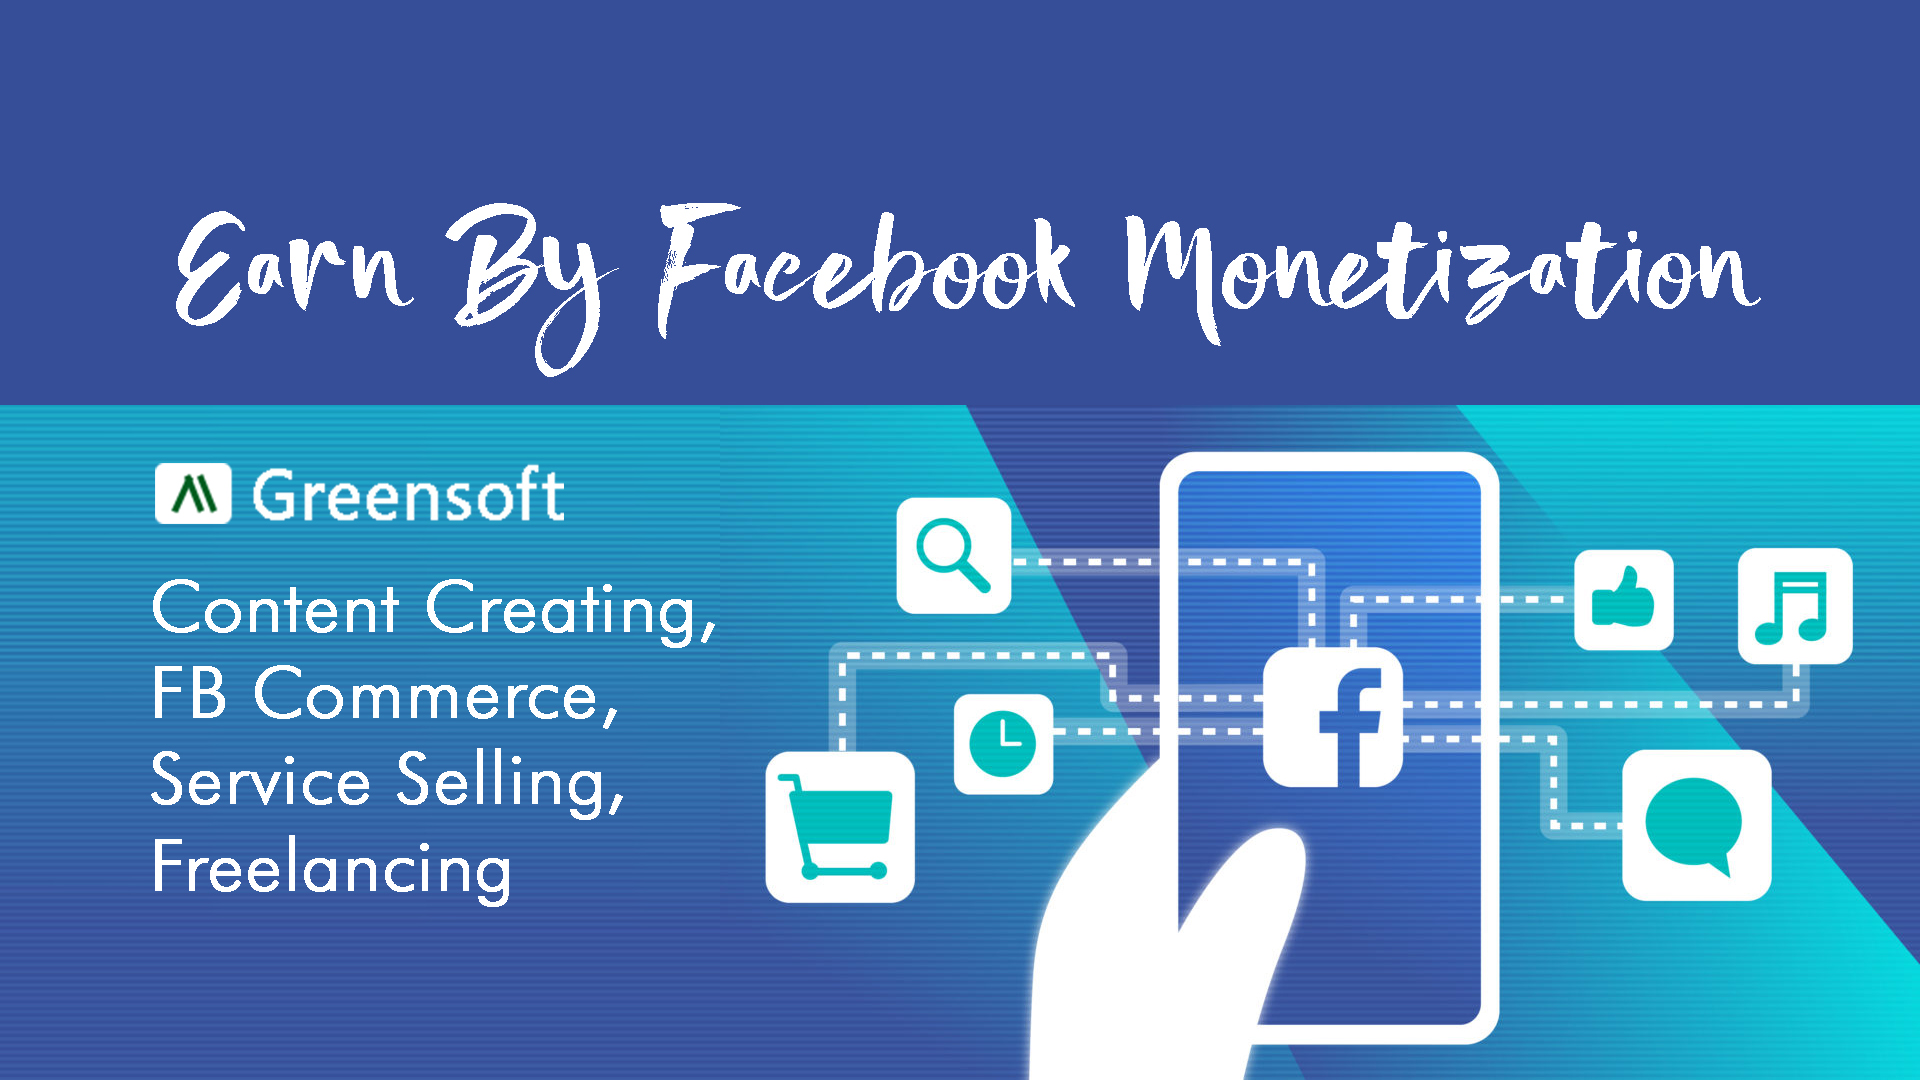 Earn money from your Facebook page, monetization, Content & Service Selling, greensoft dhaka